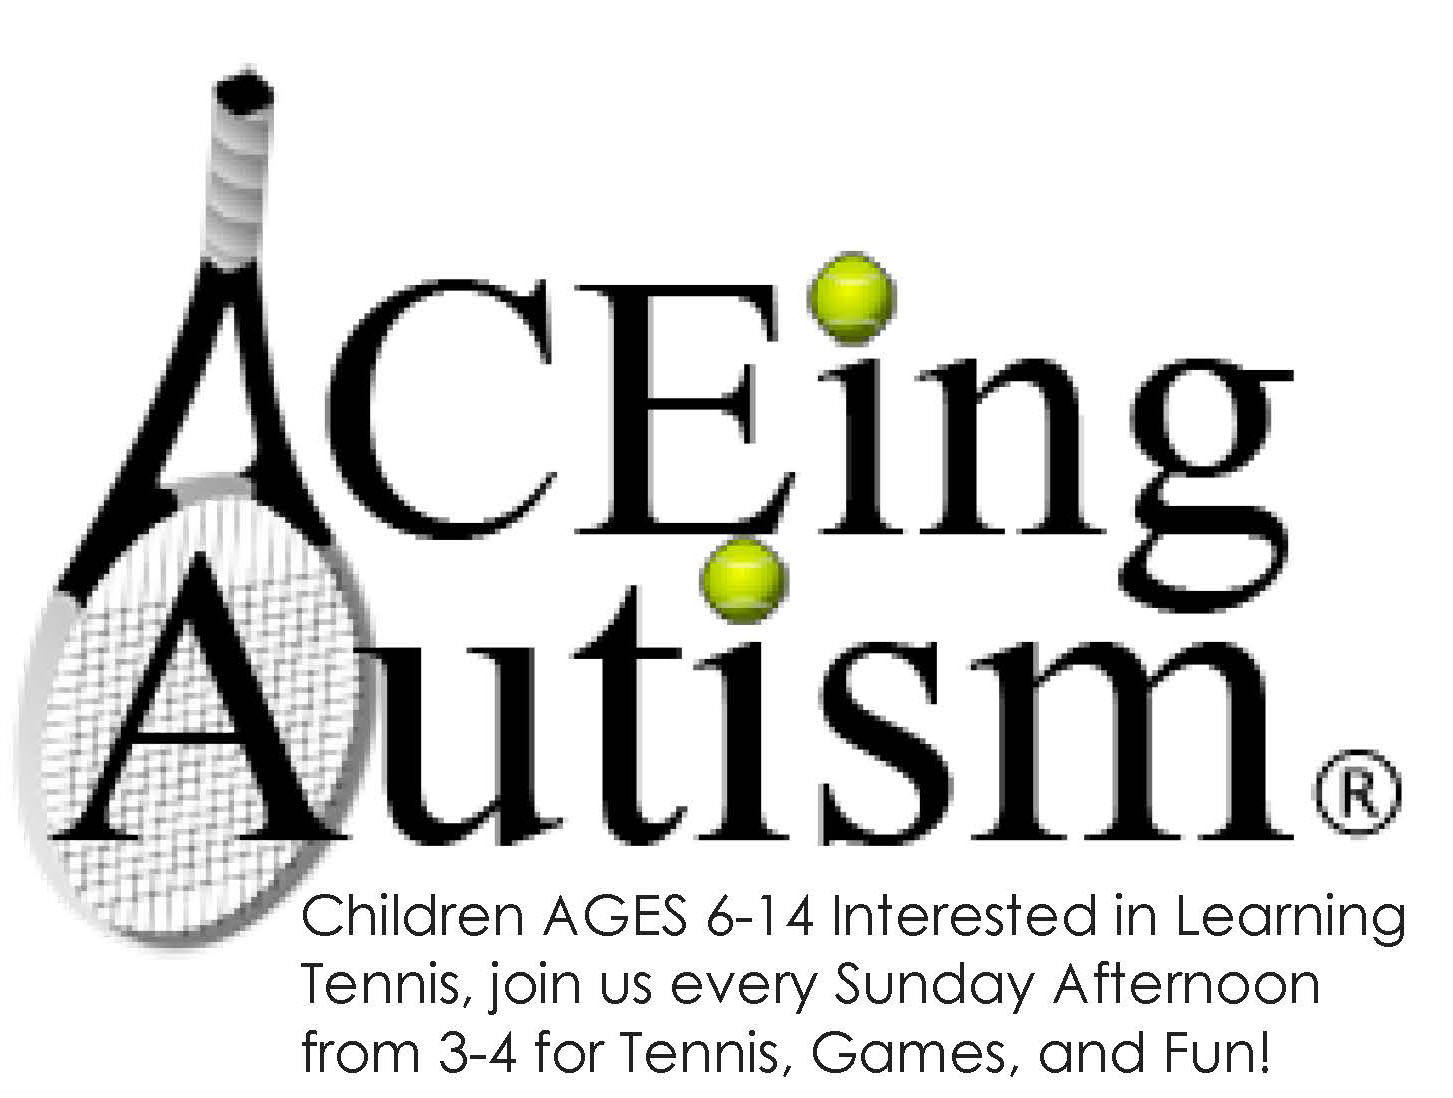 ACEing Autism, organized by Vanderbilt student Chandler Semjen, is seeking children with autism ages 6-14 to learn the game of tennis and have fun at the same time.